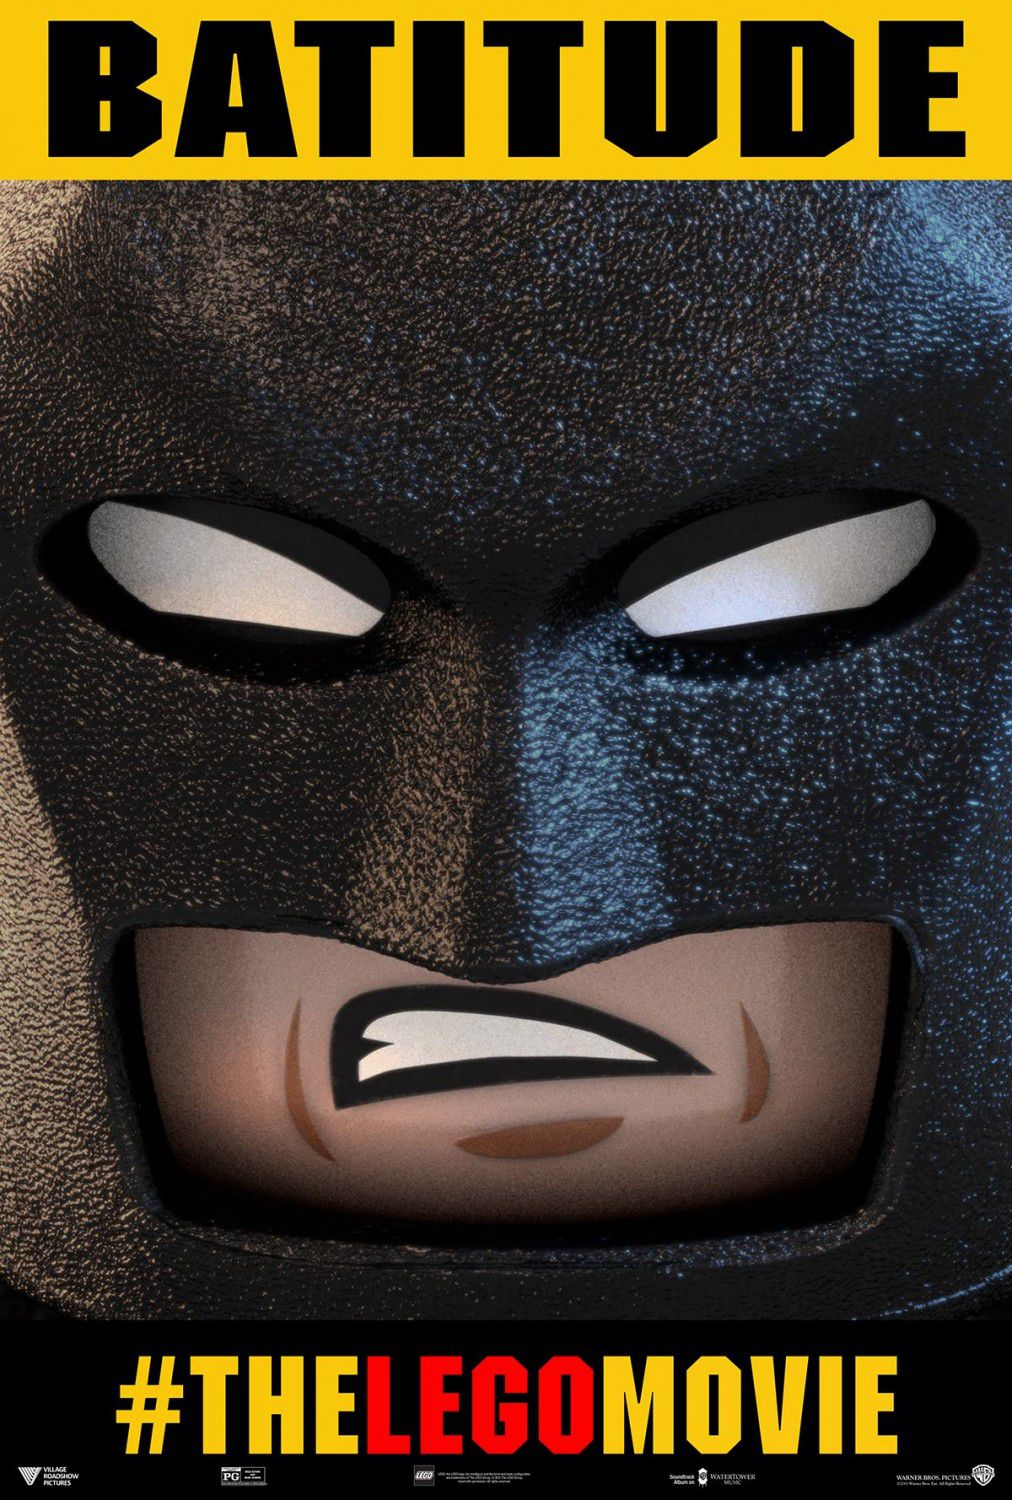 LEGO movie - Batman - Batitude